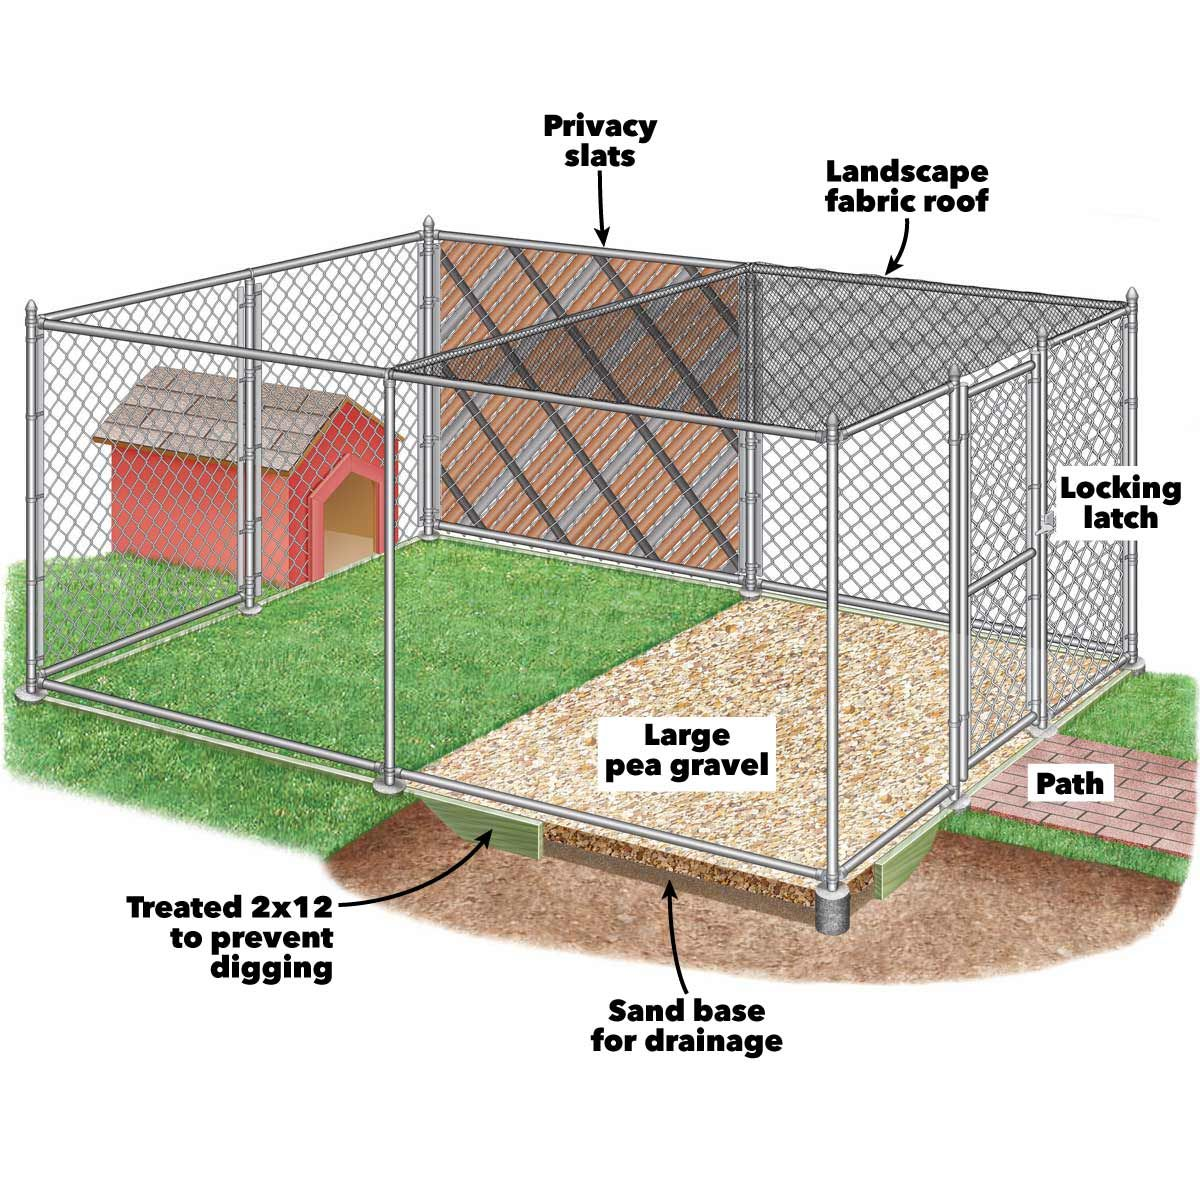 How To Build Chain Link Outdoor Dog Kennels Outdoor Dog Area Building A Dog Kennel Backyard Dog Area Outdoor dog kennel ideas